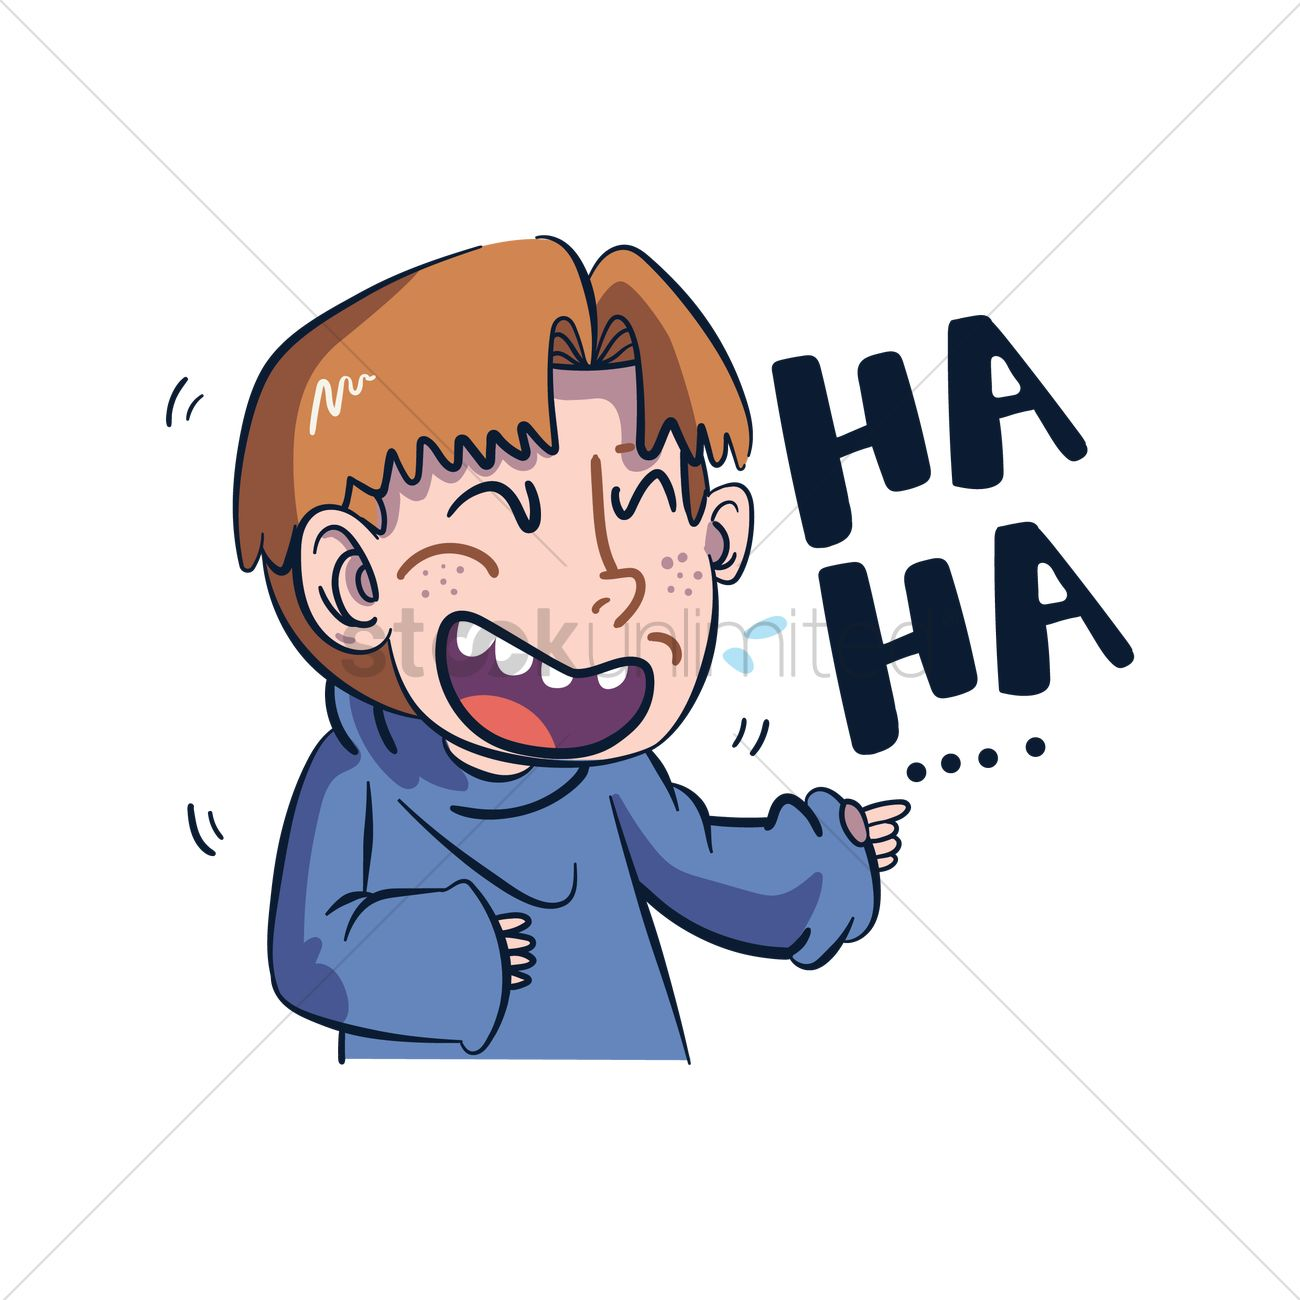 Cartoon Characters Laughing : Cartoon character laughing vector image